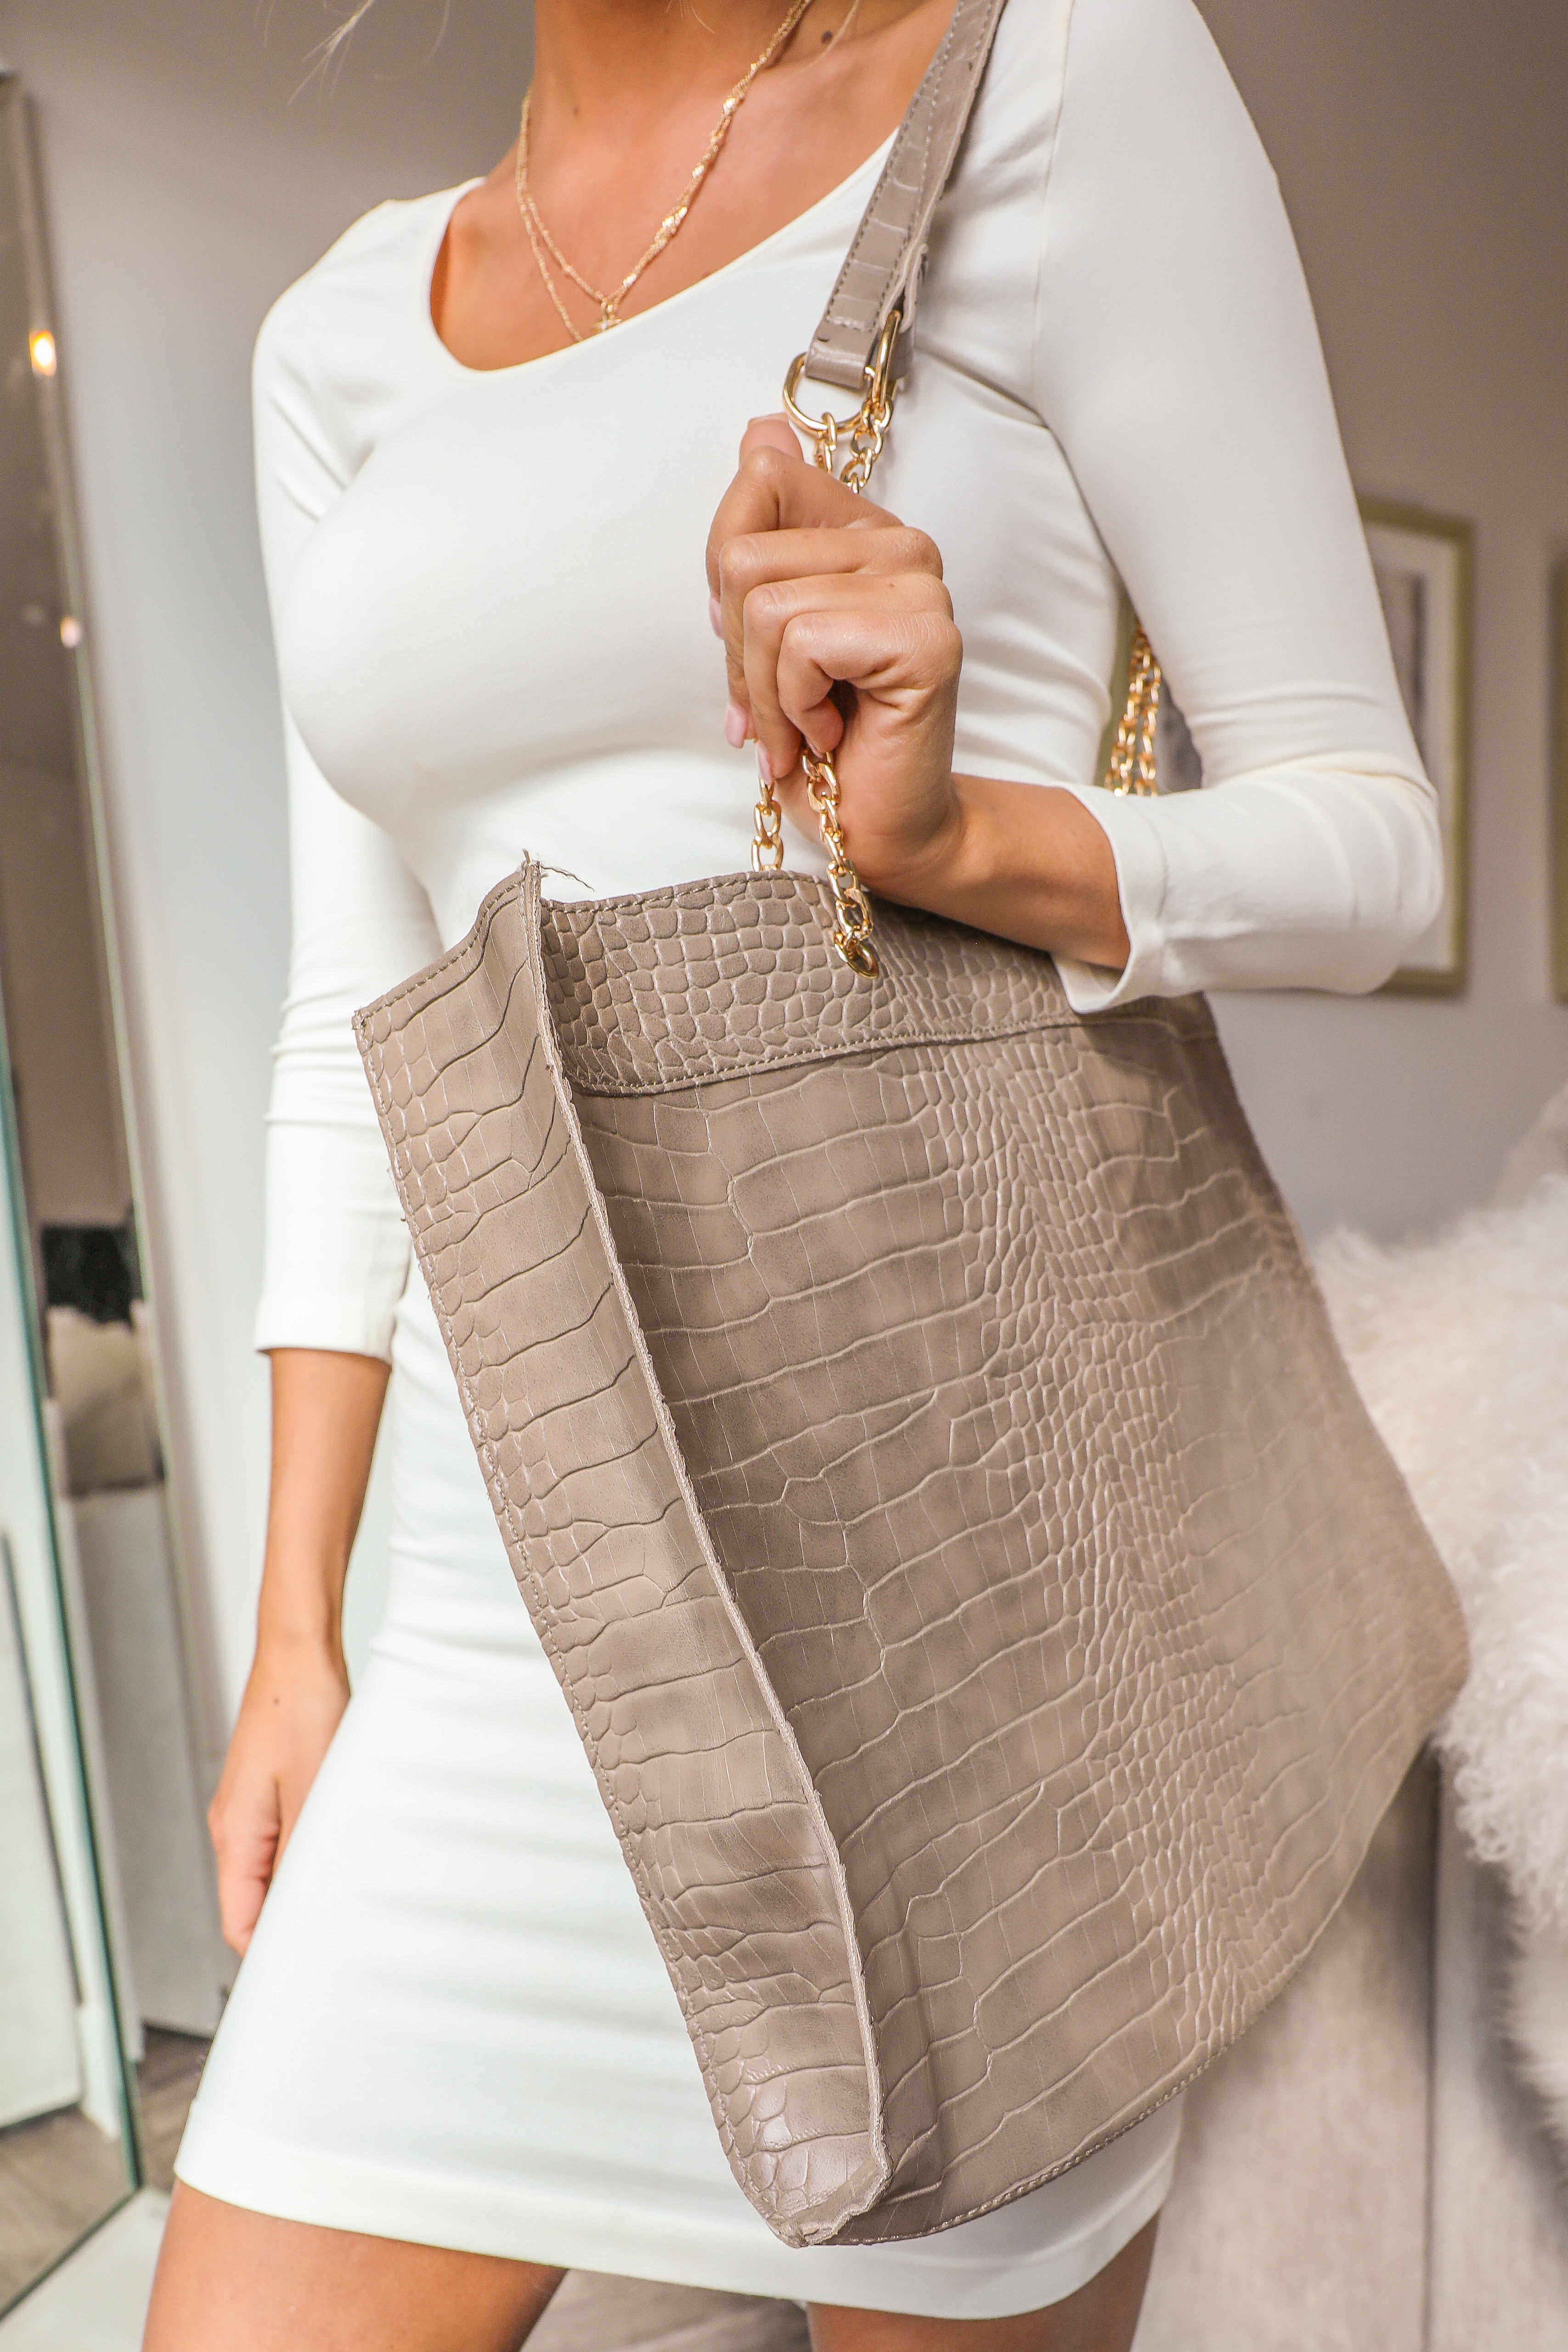 Taupe Snake Textured Tote Bag with Gold Chain Straps